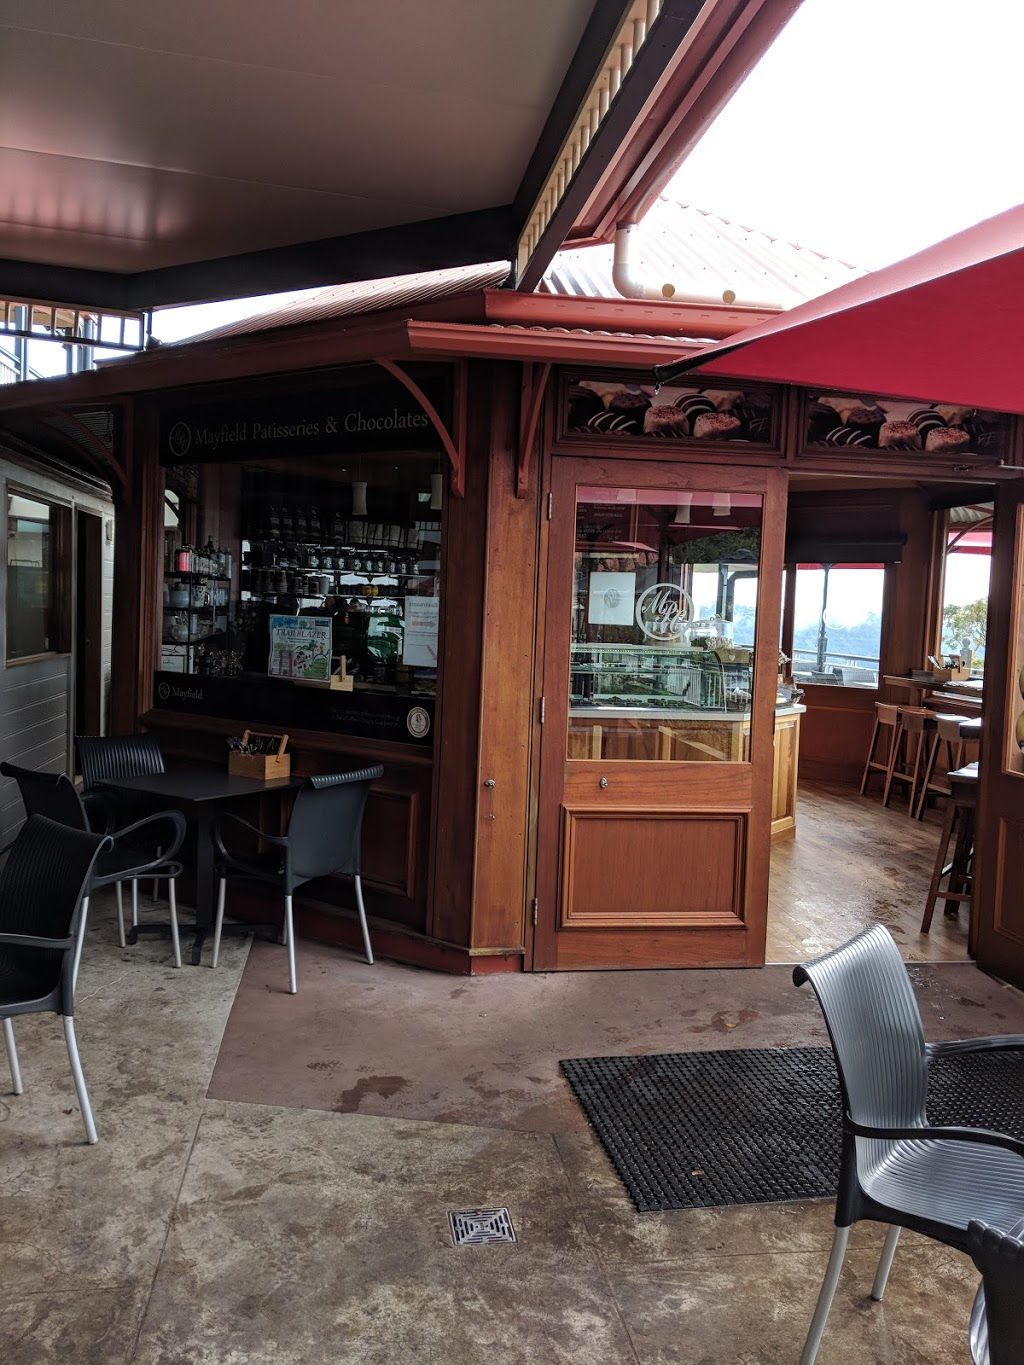 Mayfield Patisserie & Chocolates Cafe – Montville | cafe | 15/127-133 Main St, Montville QLD 4560, Australia | 0754785999 OR +61 7 5478 5999